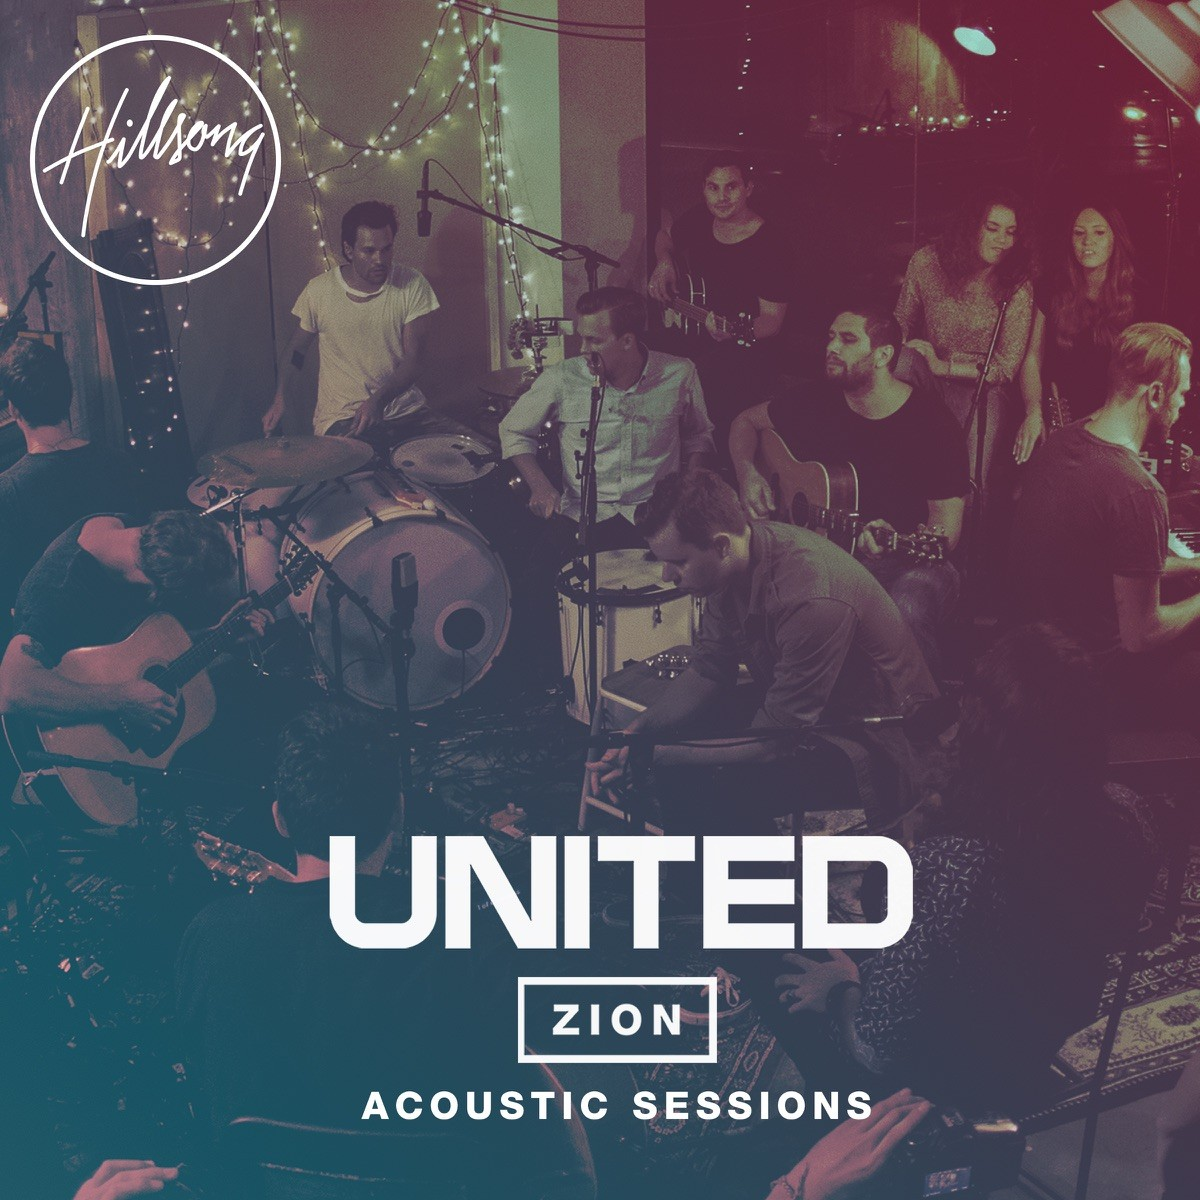 Hillsong United - Zion Acoustic Sessions CD+DVD - HMACDDVD283